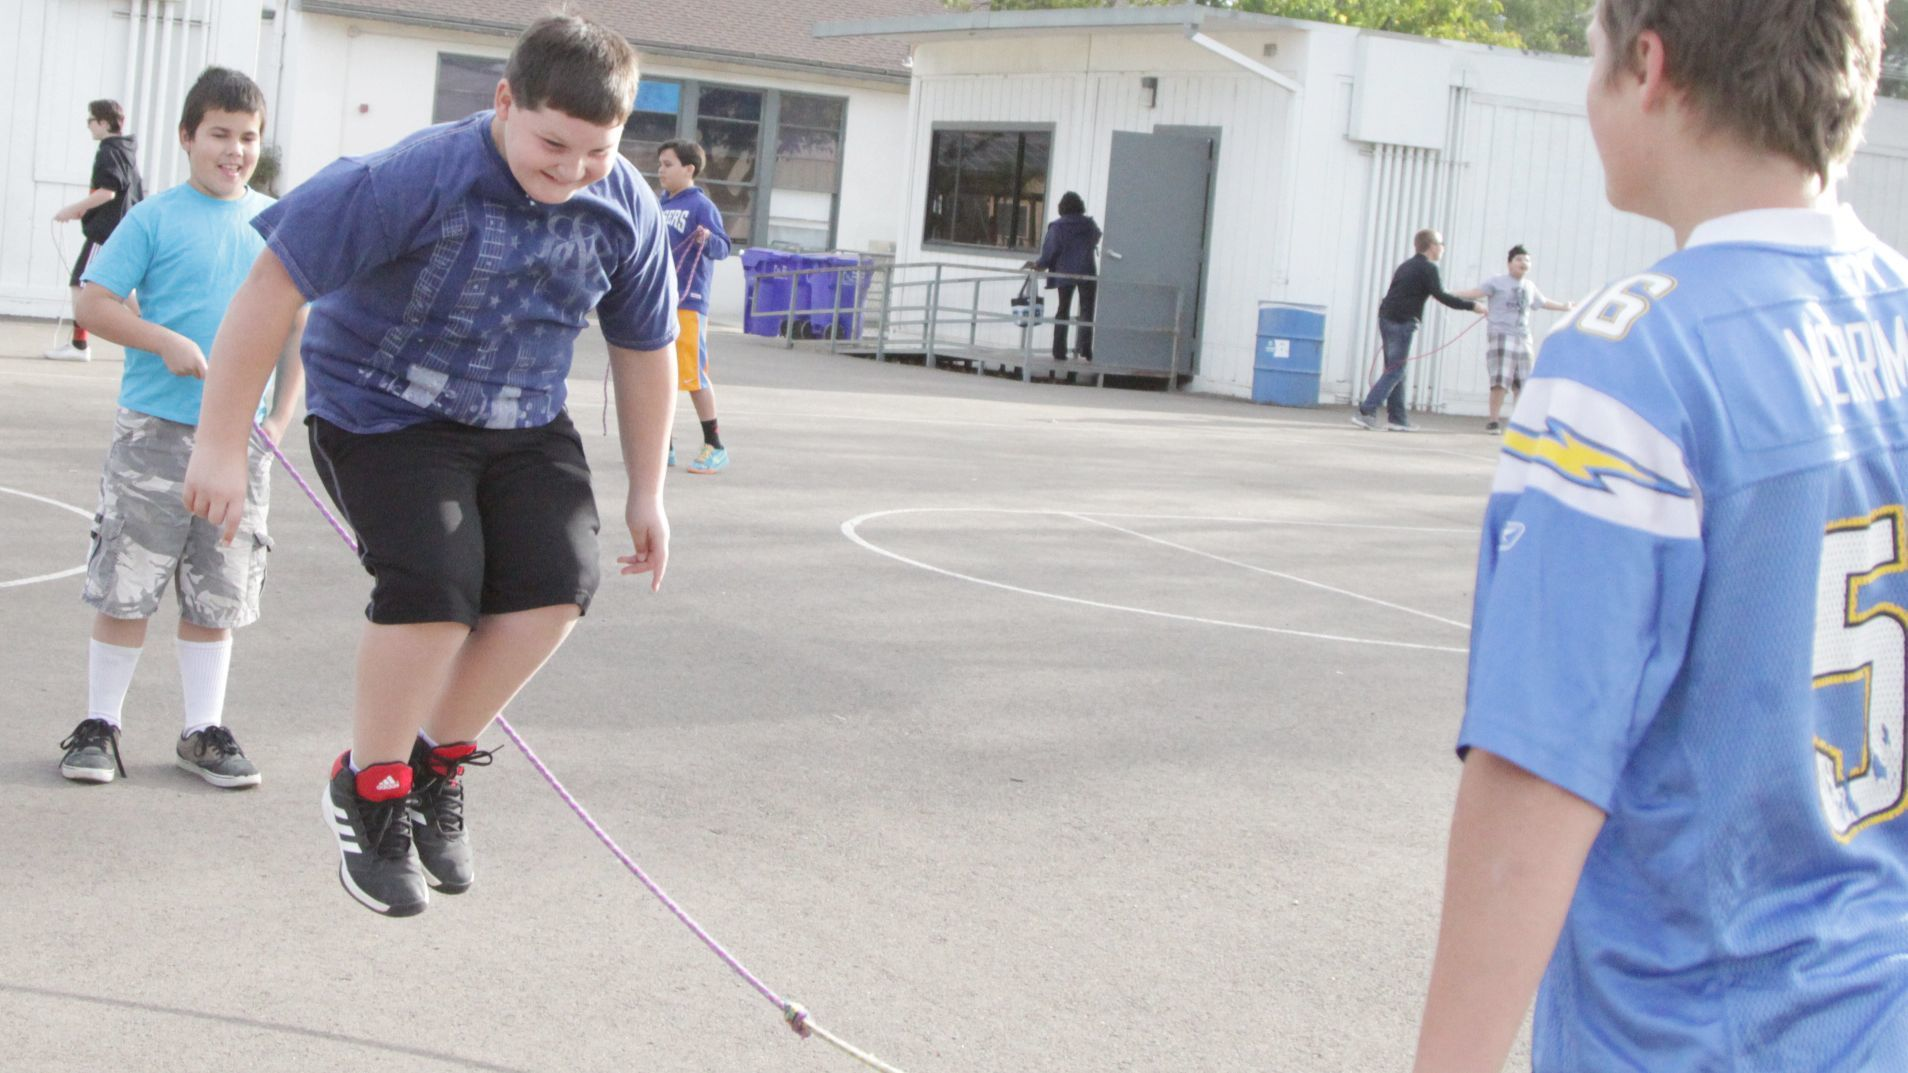 Tyler Cass enjoys his time jumping rope.